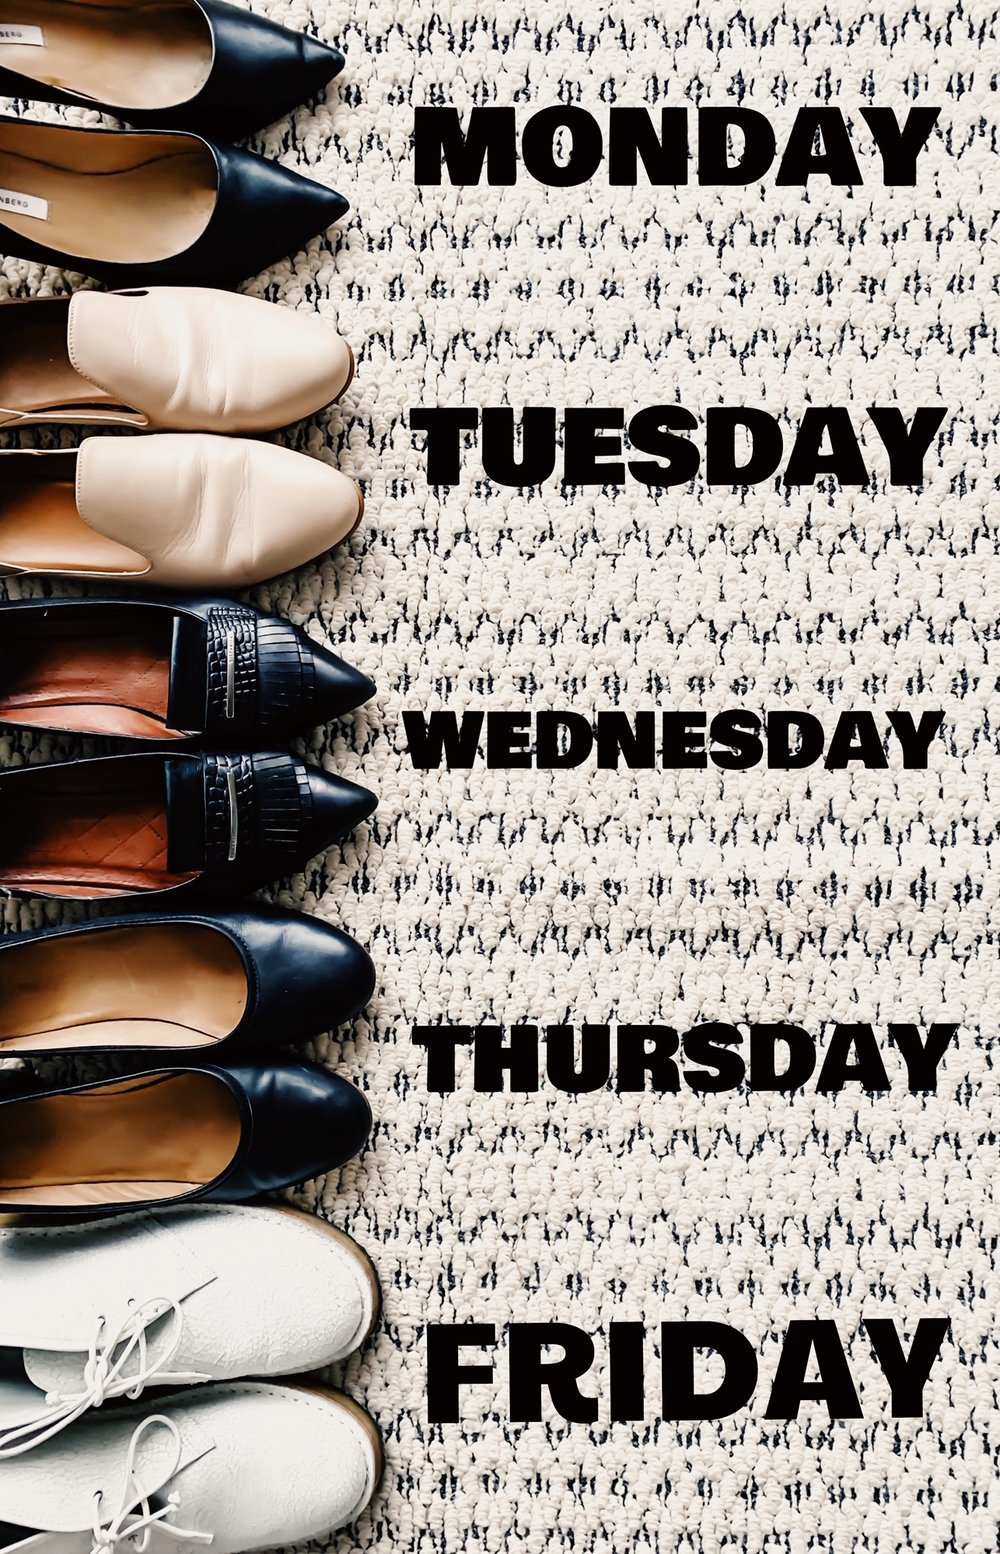 A Pair Of Business Casual Shoes For Women For Every Day Of The Week. Guide To Business Casual Shoes For Working Women. Best Shoes For Business Casual Dress Attire for Women. Best work shoes. Best flats for work. Best heals for for, business casual dress. #business #casual #womens #shoes